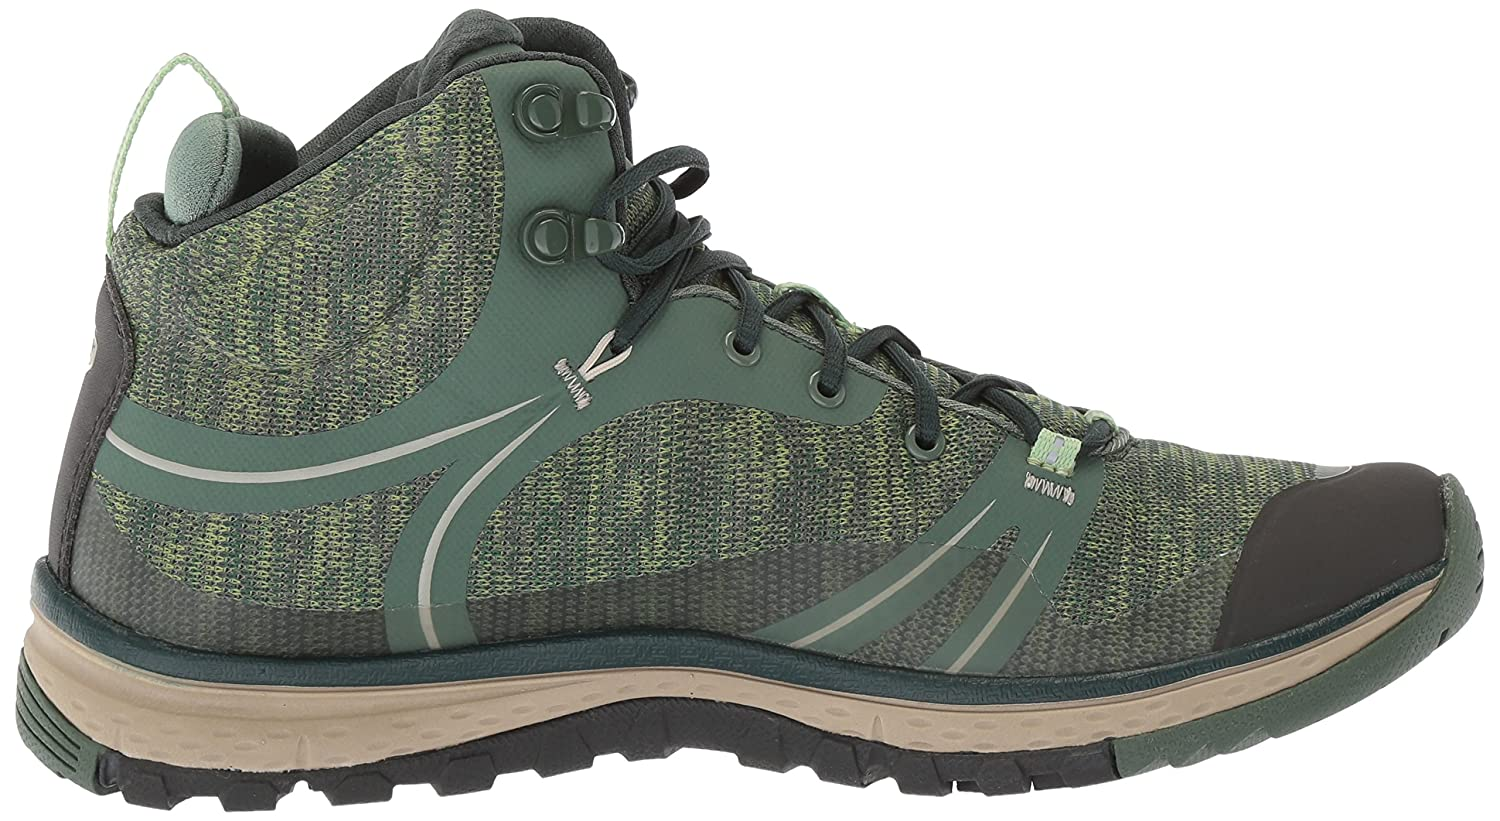 KEEN KEEN KEEN Damen Terradora Mid Wp-w High-top, Astral Aura Liberty, 42 EU  b12ff1